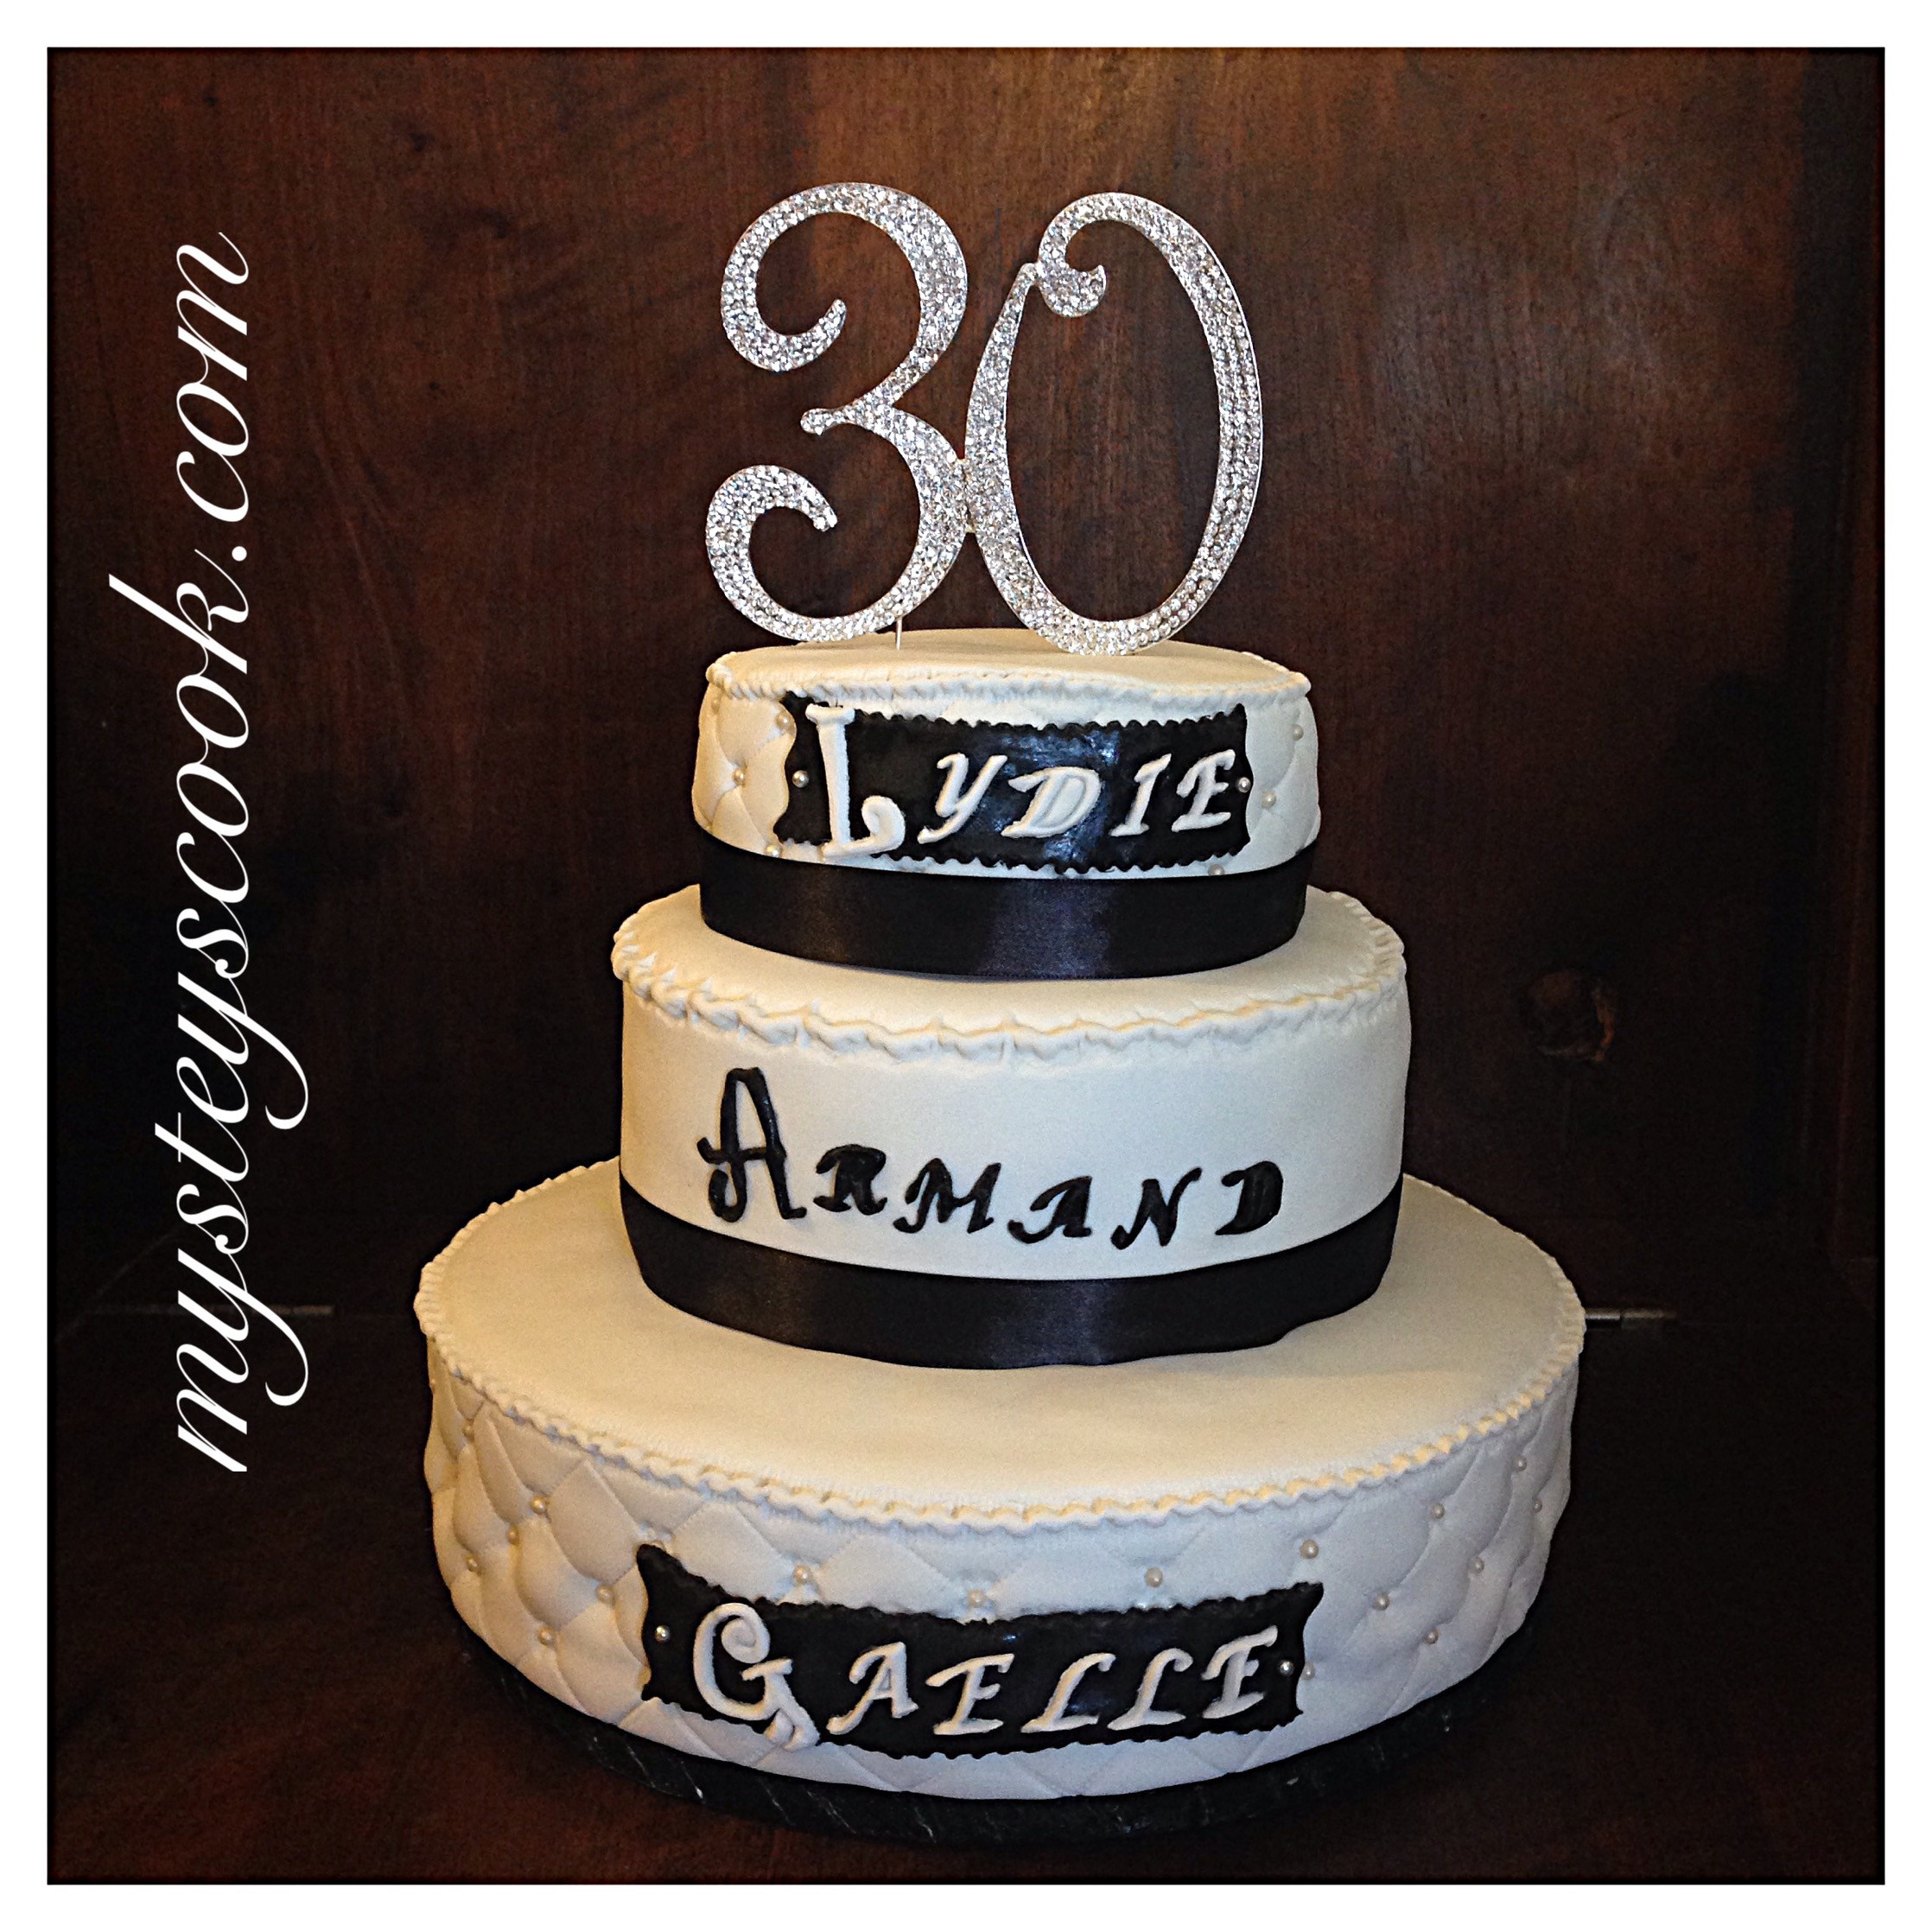 anniversaire24 gateau anniversaire 30 ans homme. Black Bedroom Furniture Sets. Home Design Ideas